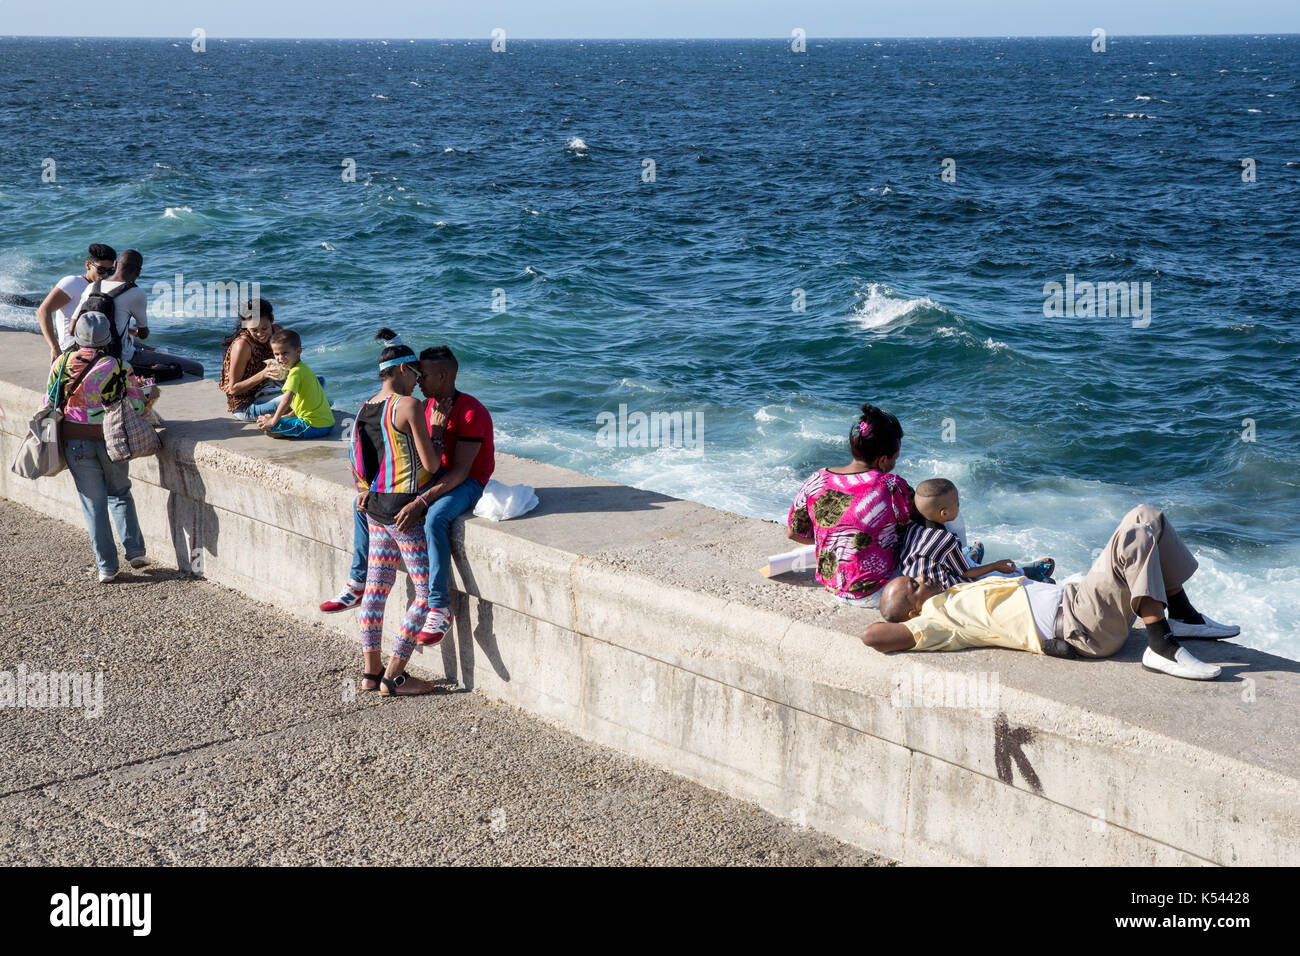 Young locals hang out on the Malecon sea front in Havana, Cuba in the Caribbean. - Stock Image